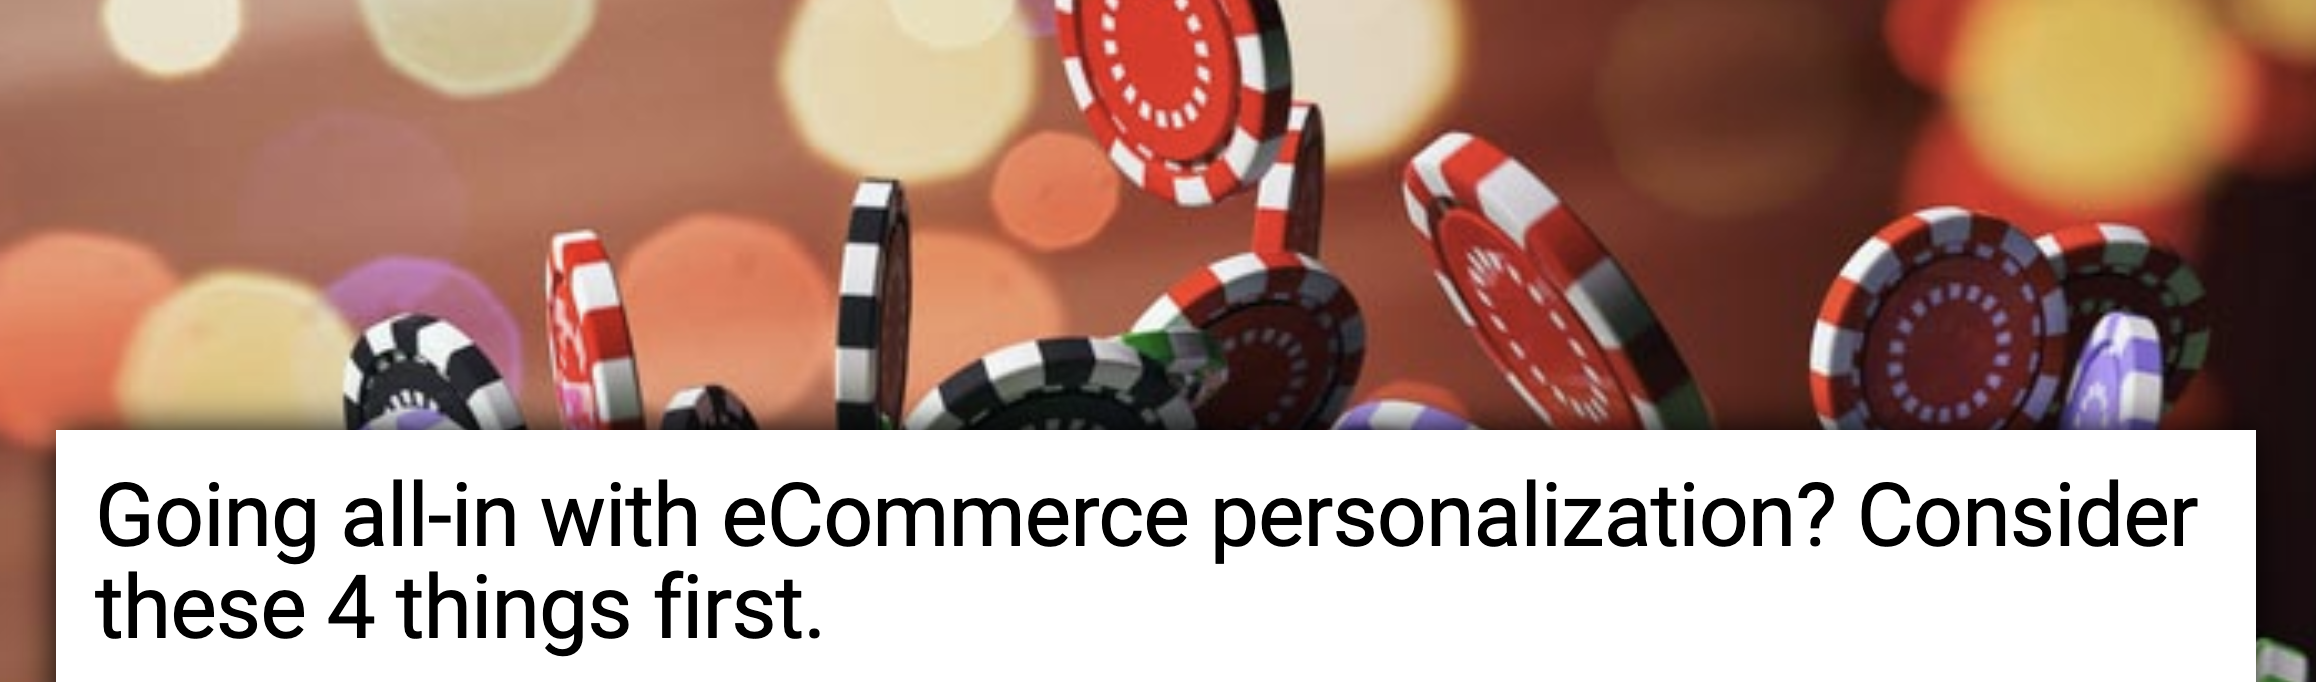 Going all-in with eCommerce personalization? Consider these 4 things first.